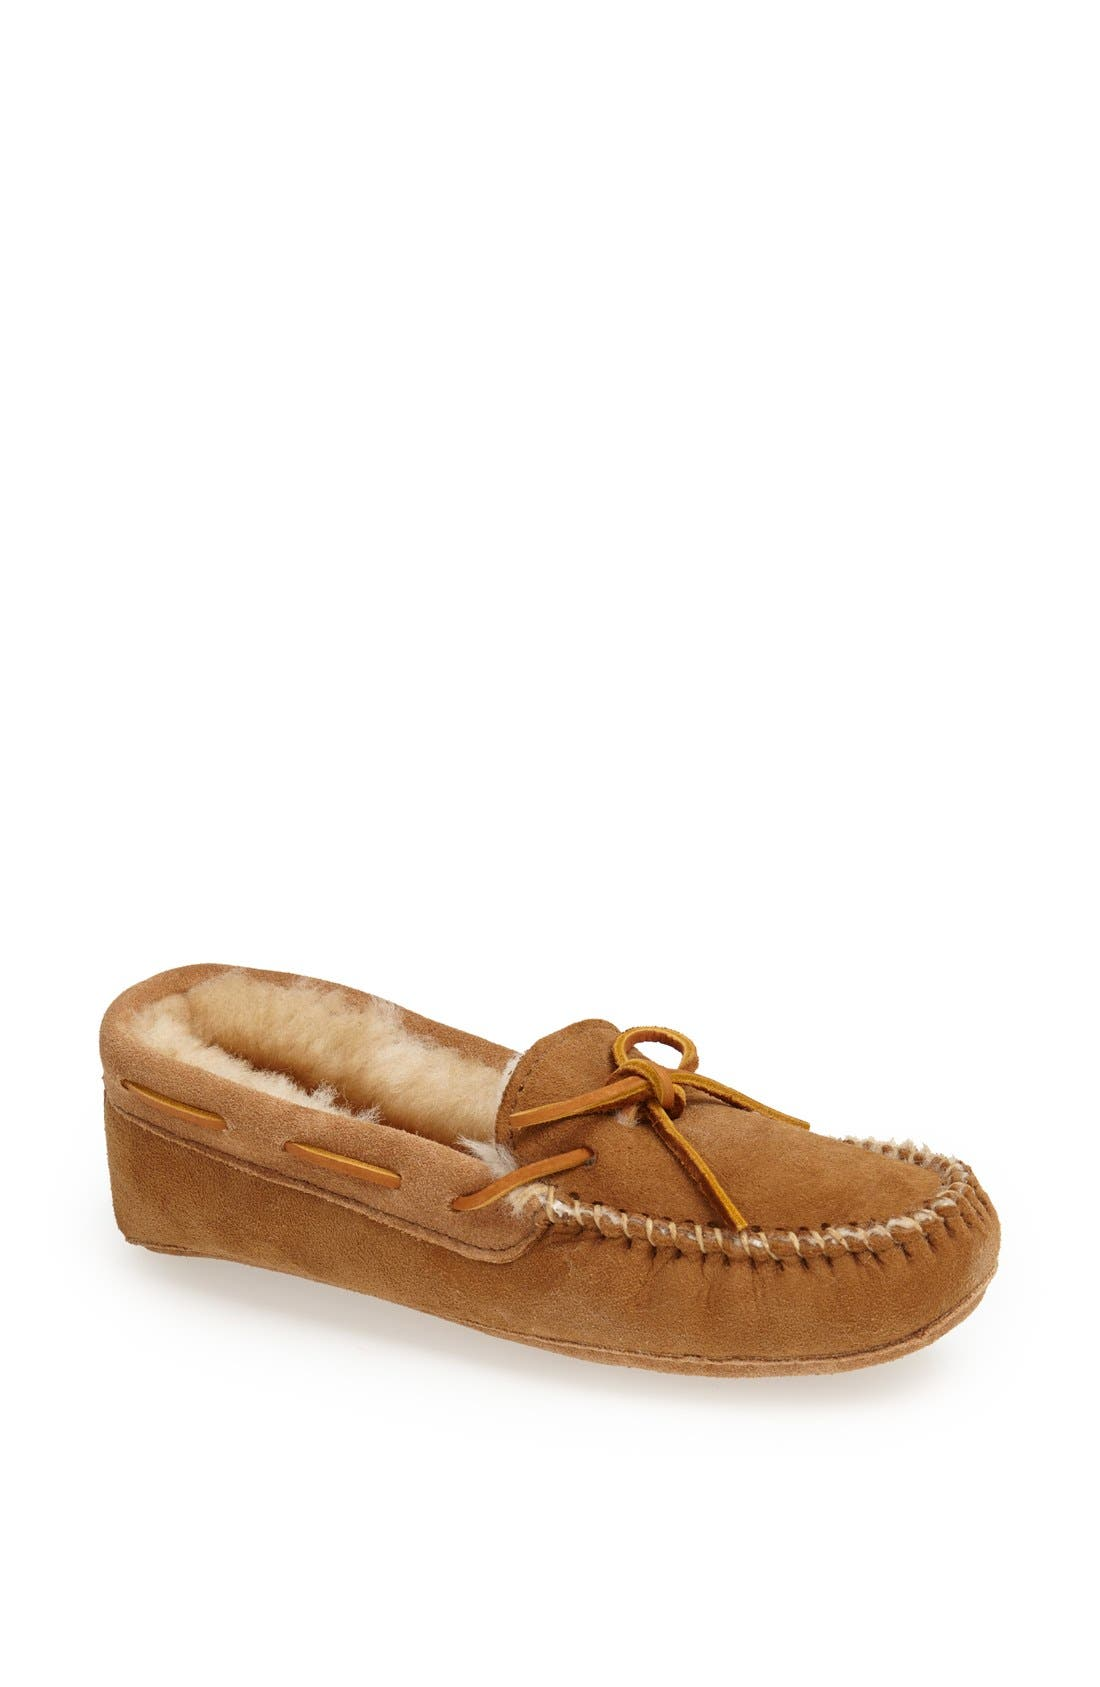 Main Image - Minnetonka Softsole Sheepskin Moccasin (Women)